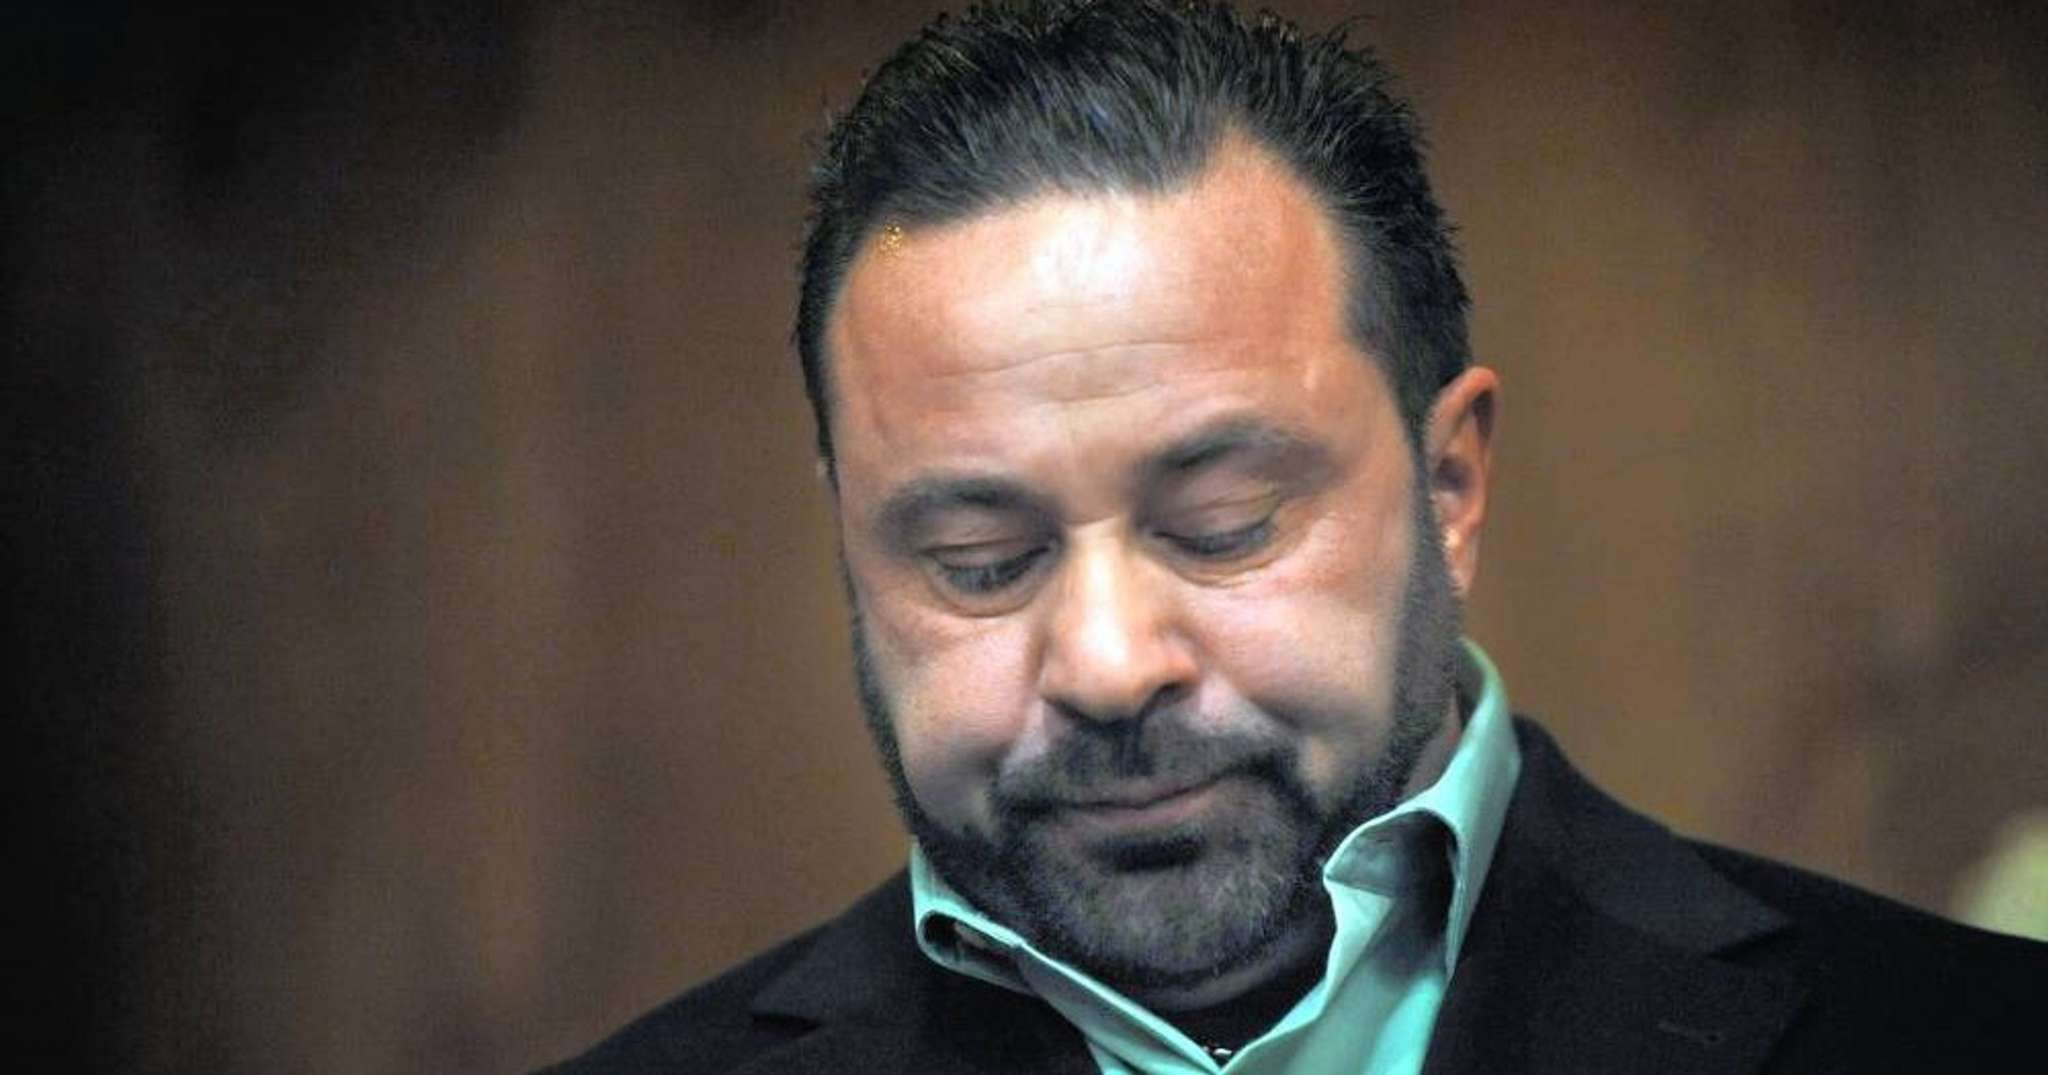 joe-giudice-heartbroken-after-having-his-deportation-appeal-denied-but-is-not-done-fighting